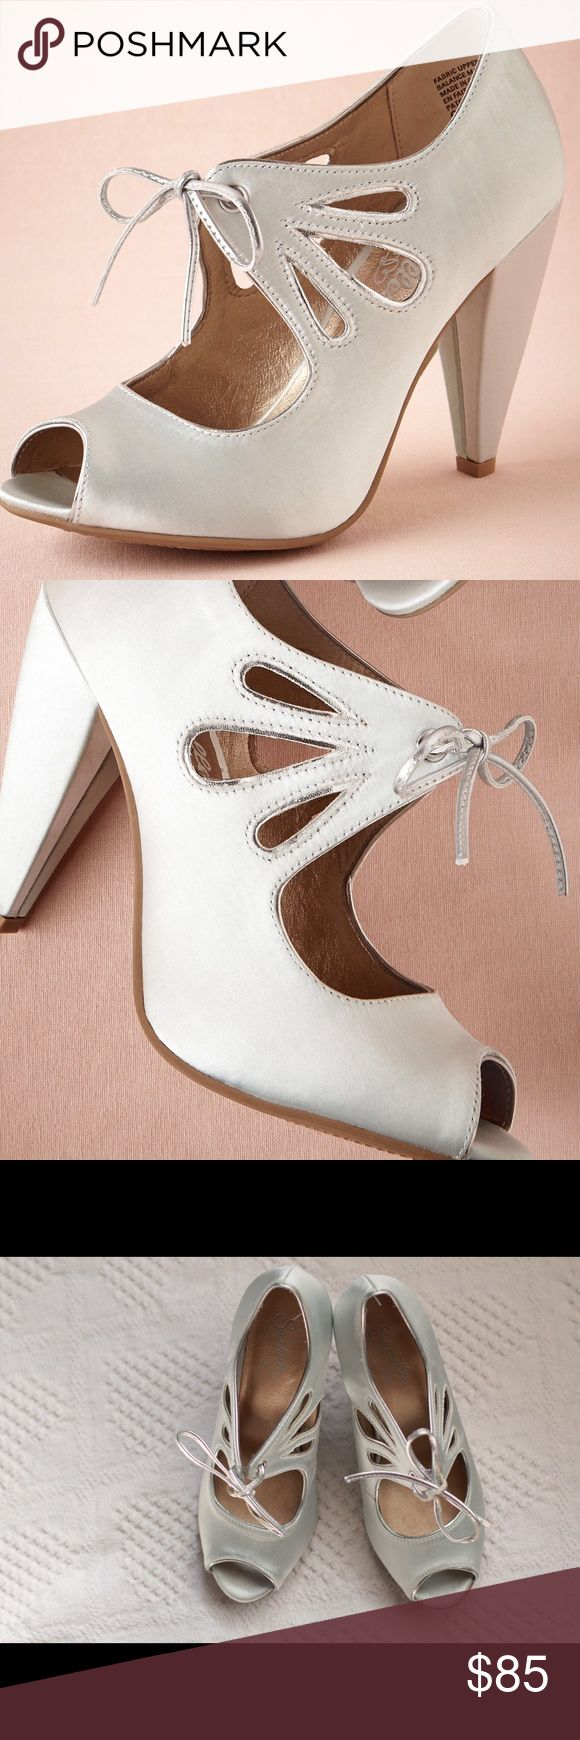 """NWOT BHLDN Mint Sprig Booties -- Wedding Shoes From BHLDN: Mint-hued with silver piping and a touch of sheen, these cut-out booties from Seychelles boast a chunky heel and rubber bottom that make this pair a top choice for dancing and dipping into the evening. Tie closure. Satin upper, leather insole. 3.5"""" satin wrapped heel. Note: I am a 7-7.5 and these fit perfectly. If you're a 7.5-8, these may be small. I purchased these as a backup for my wedding shoes (...erm, stilettos) because these…"""